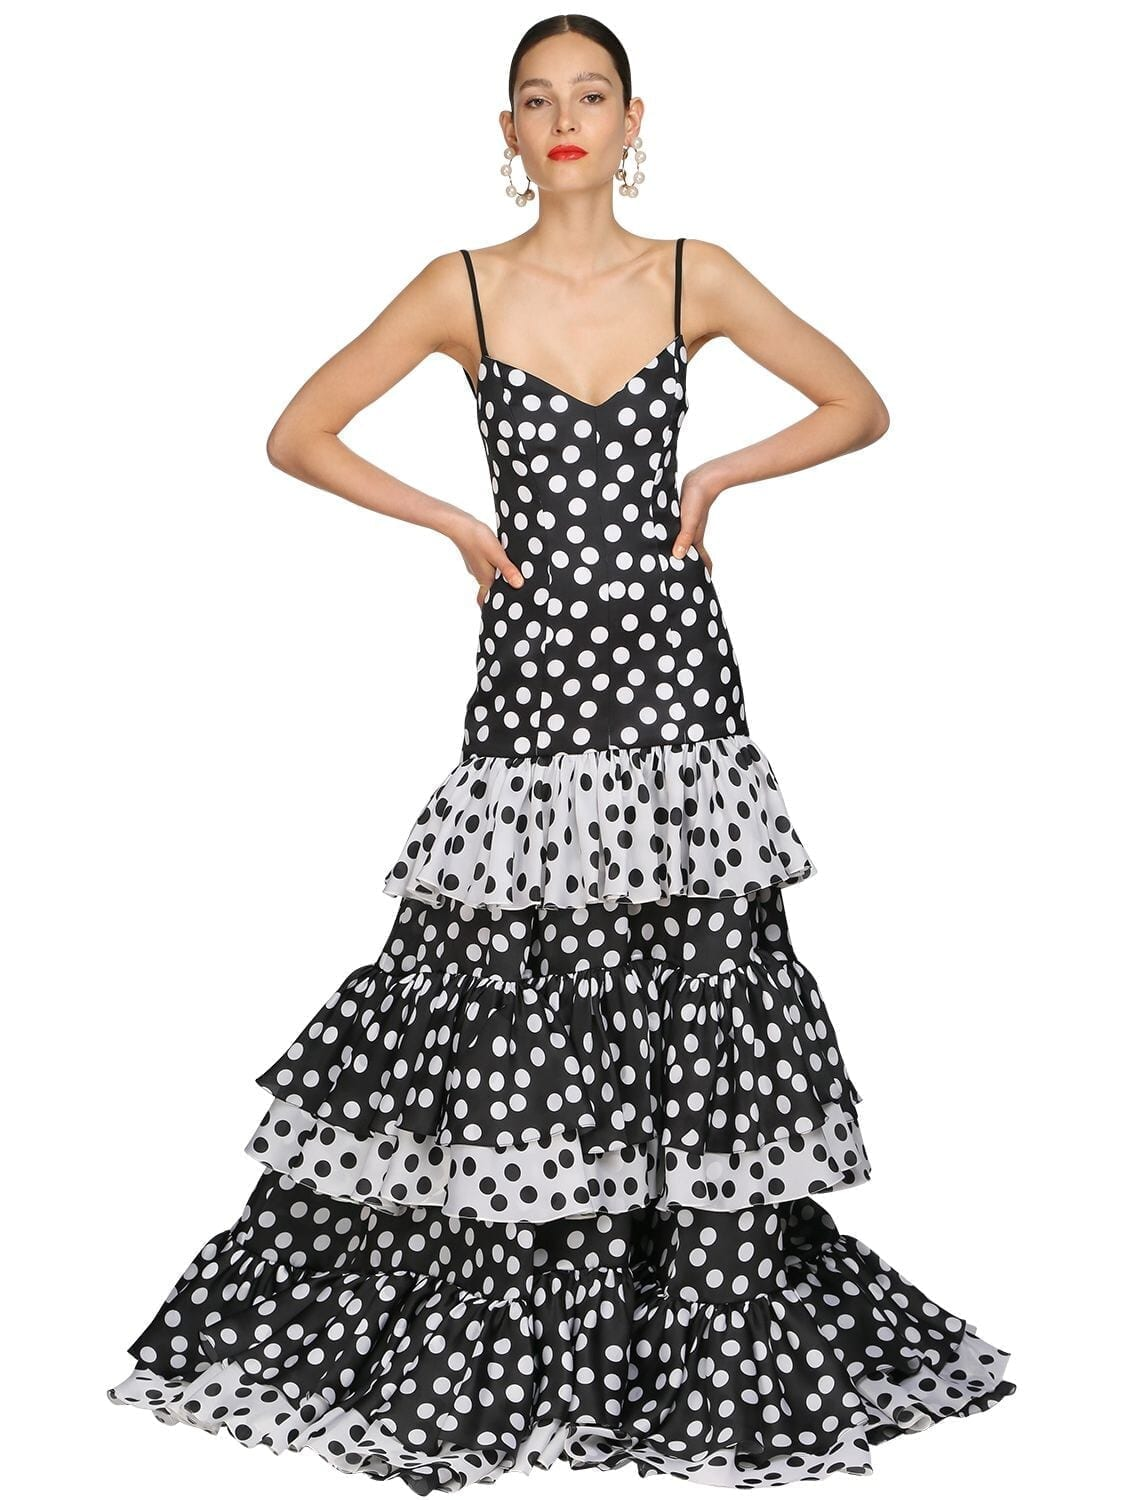 CAROLINA HERRERA Printed Silk Taffeta Long Dress